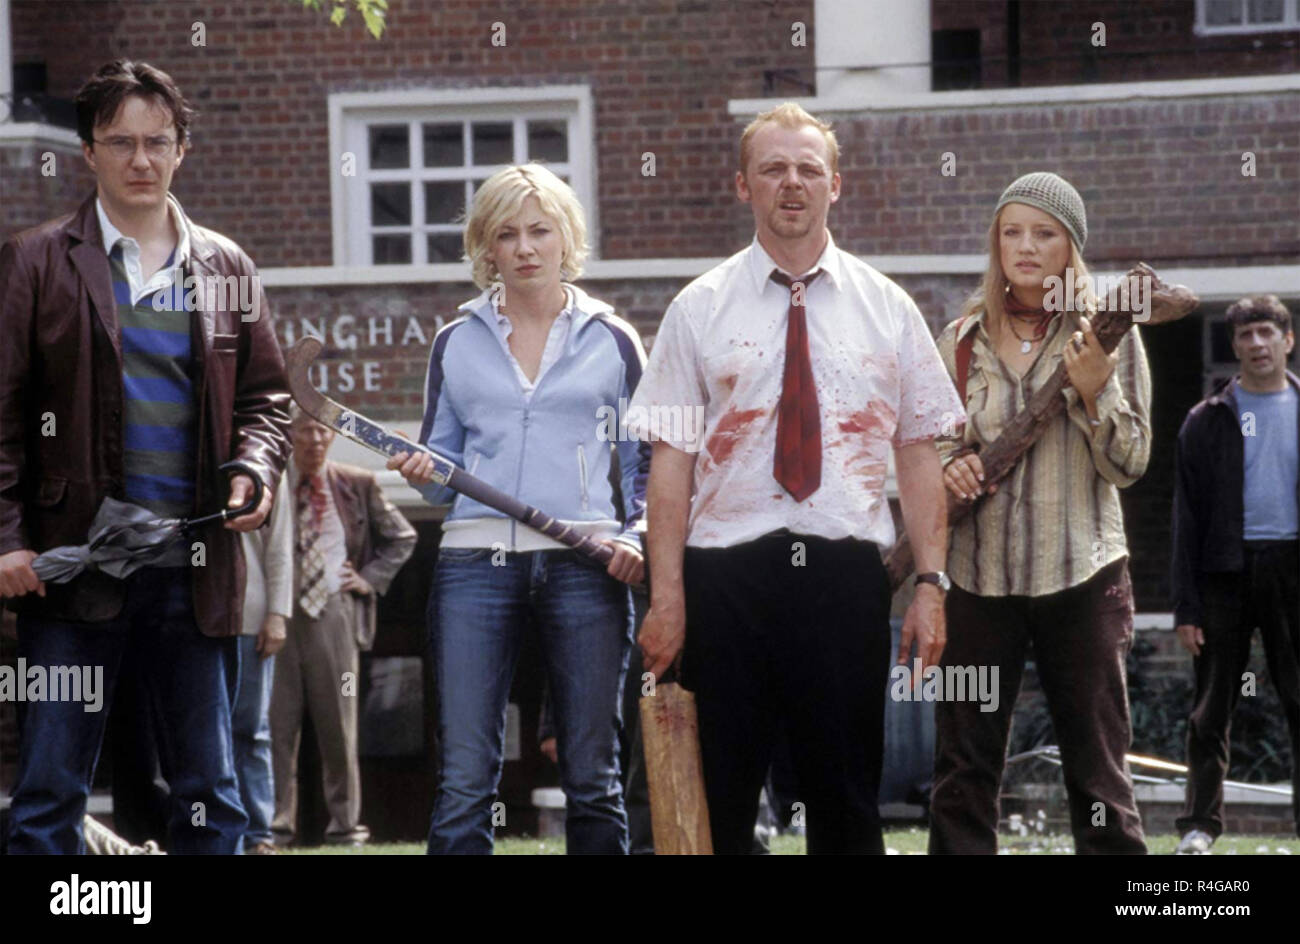 SHAUN  OF THE DEAD 2004 Working Title film with from left: Dylan Moran, Kate Ashfield, Simon Pegg,Lucy Davis - Stock Image